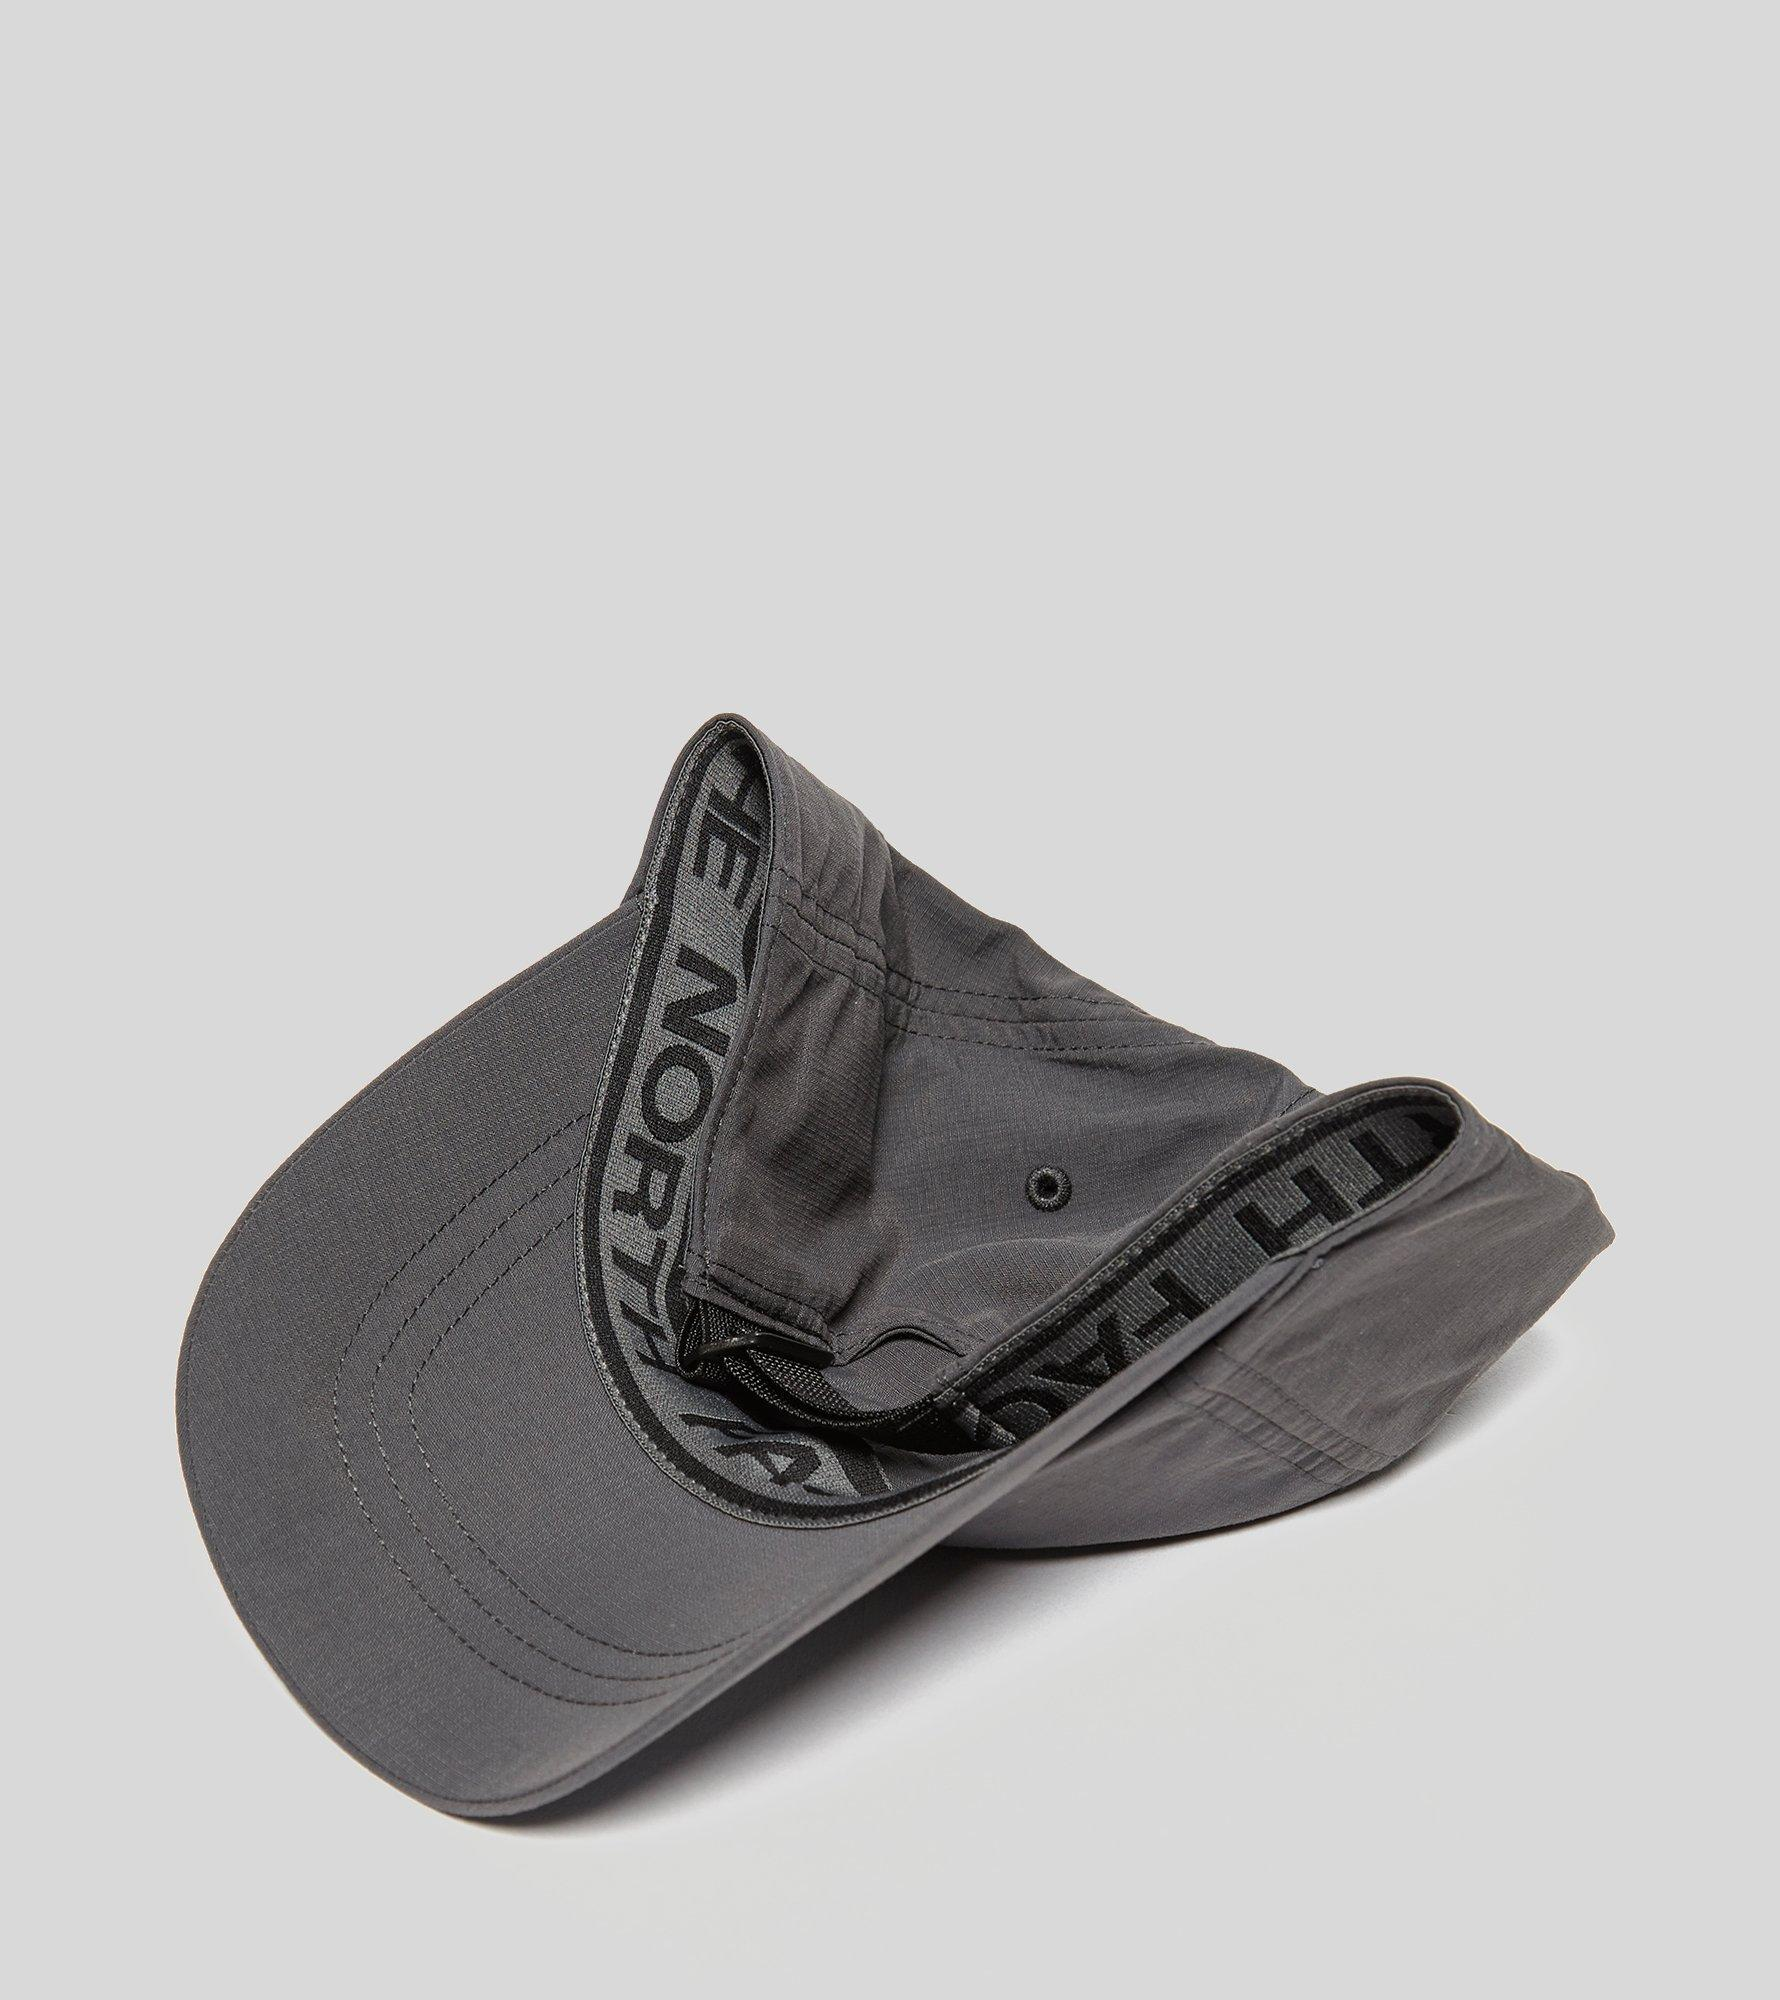 0a6a54a7495 The North Face Horizon Ball Cap in Gray for Men - Lyst